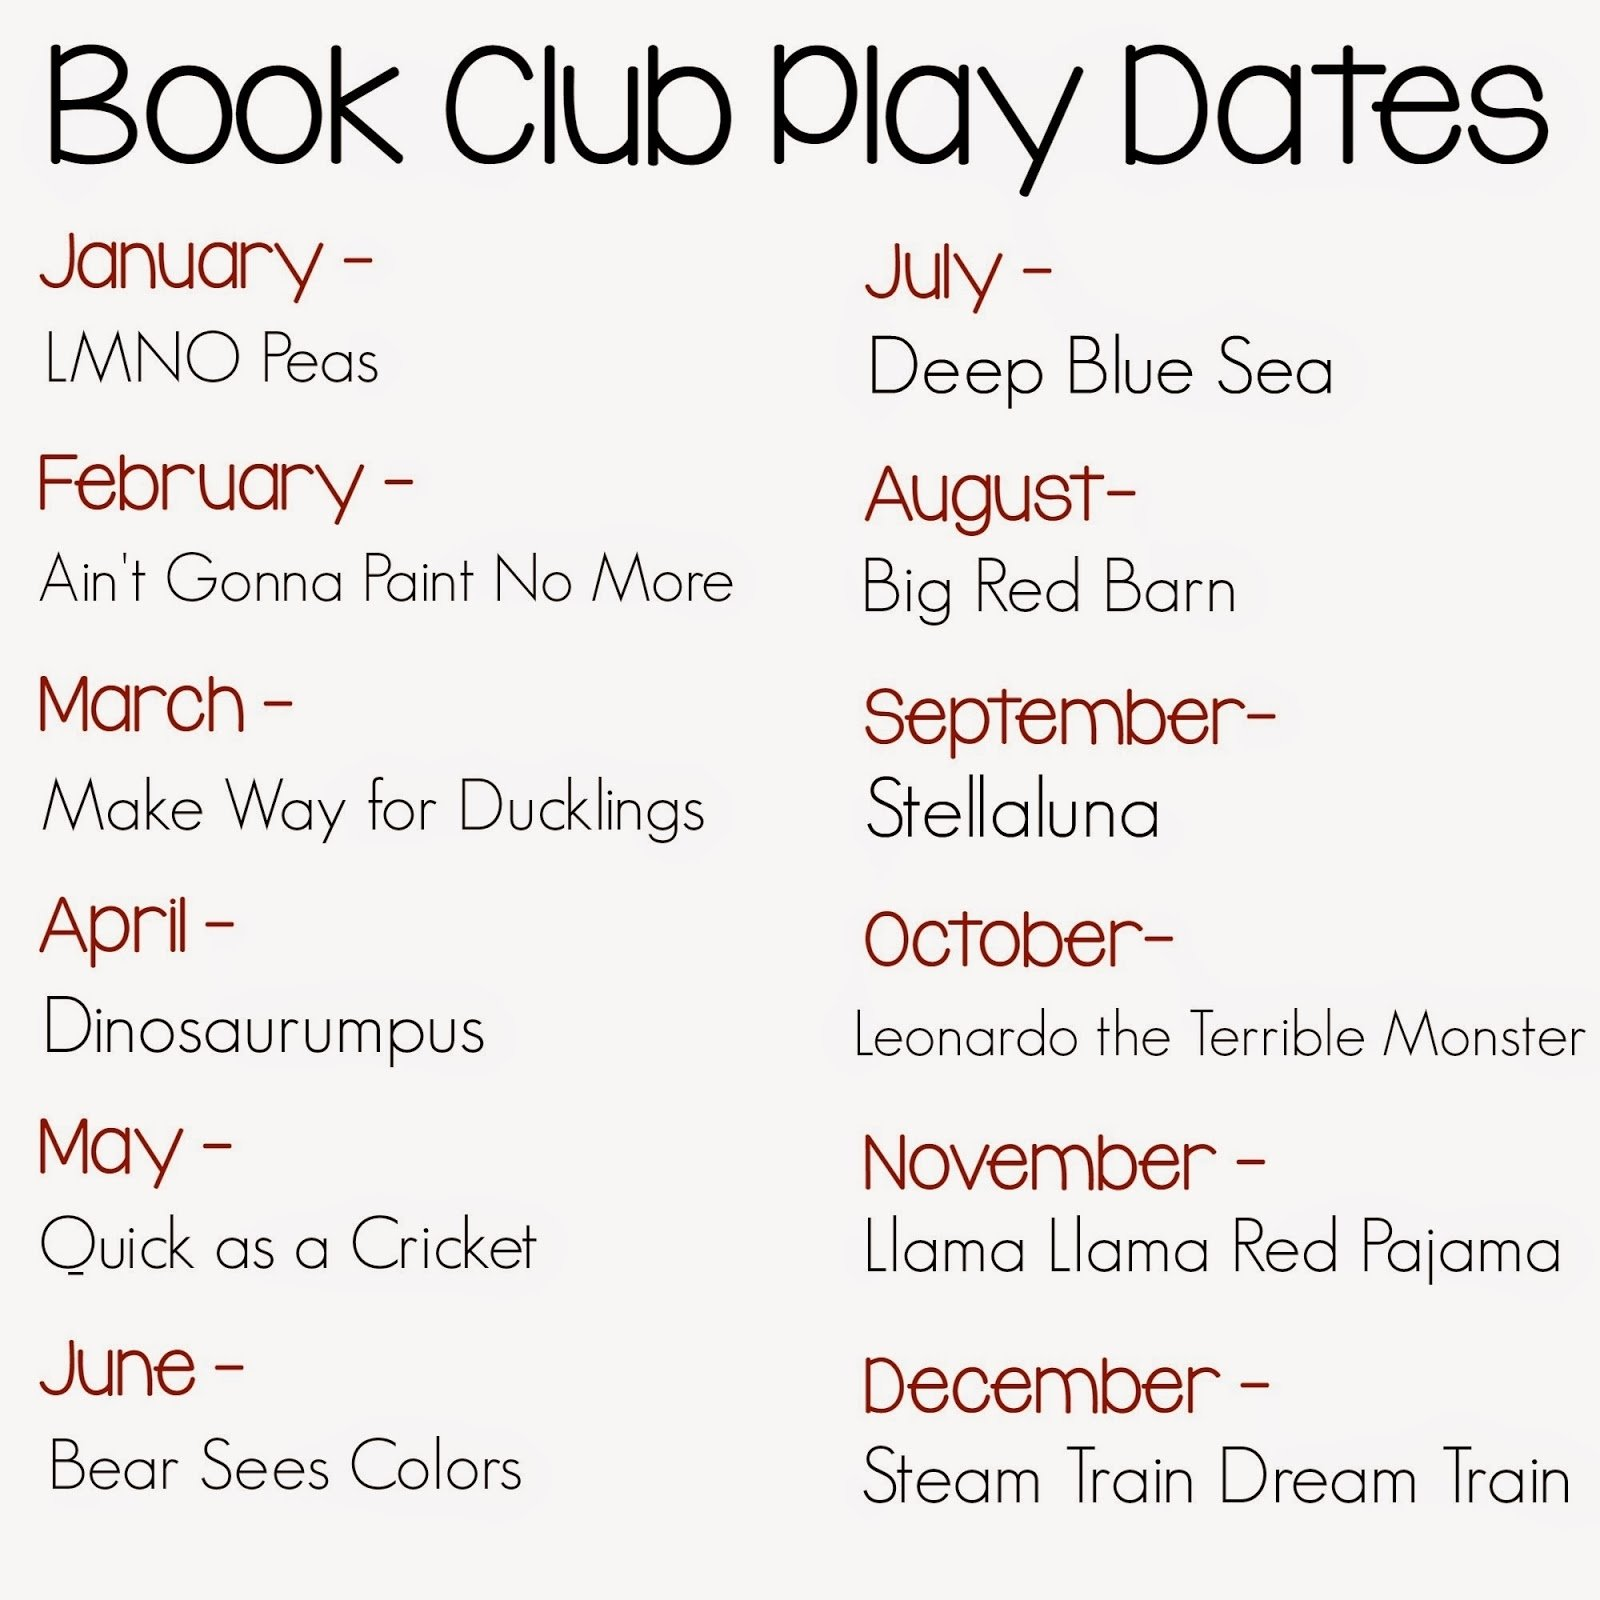 how to plan and host a book club play date for kids | still playing